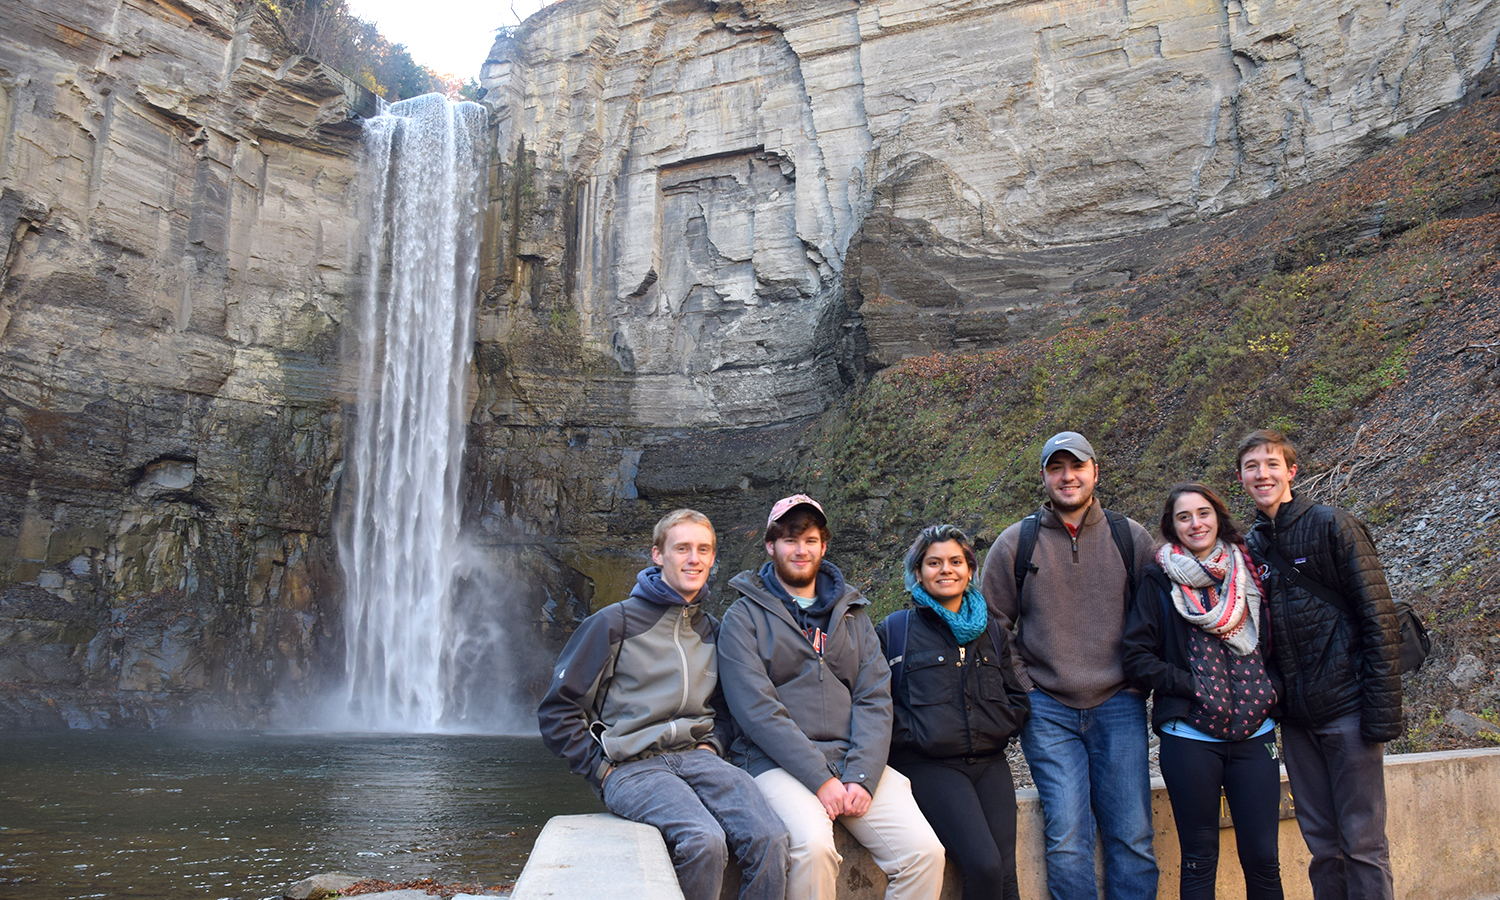 Here is a photo of the Geoscience Club at Taughannok Falls.  It is the tallest waterfall in the Northeast.